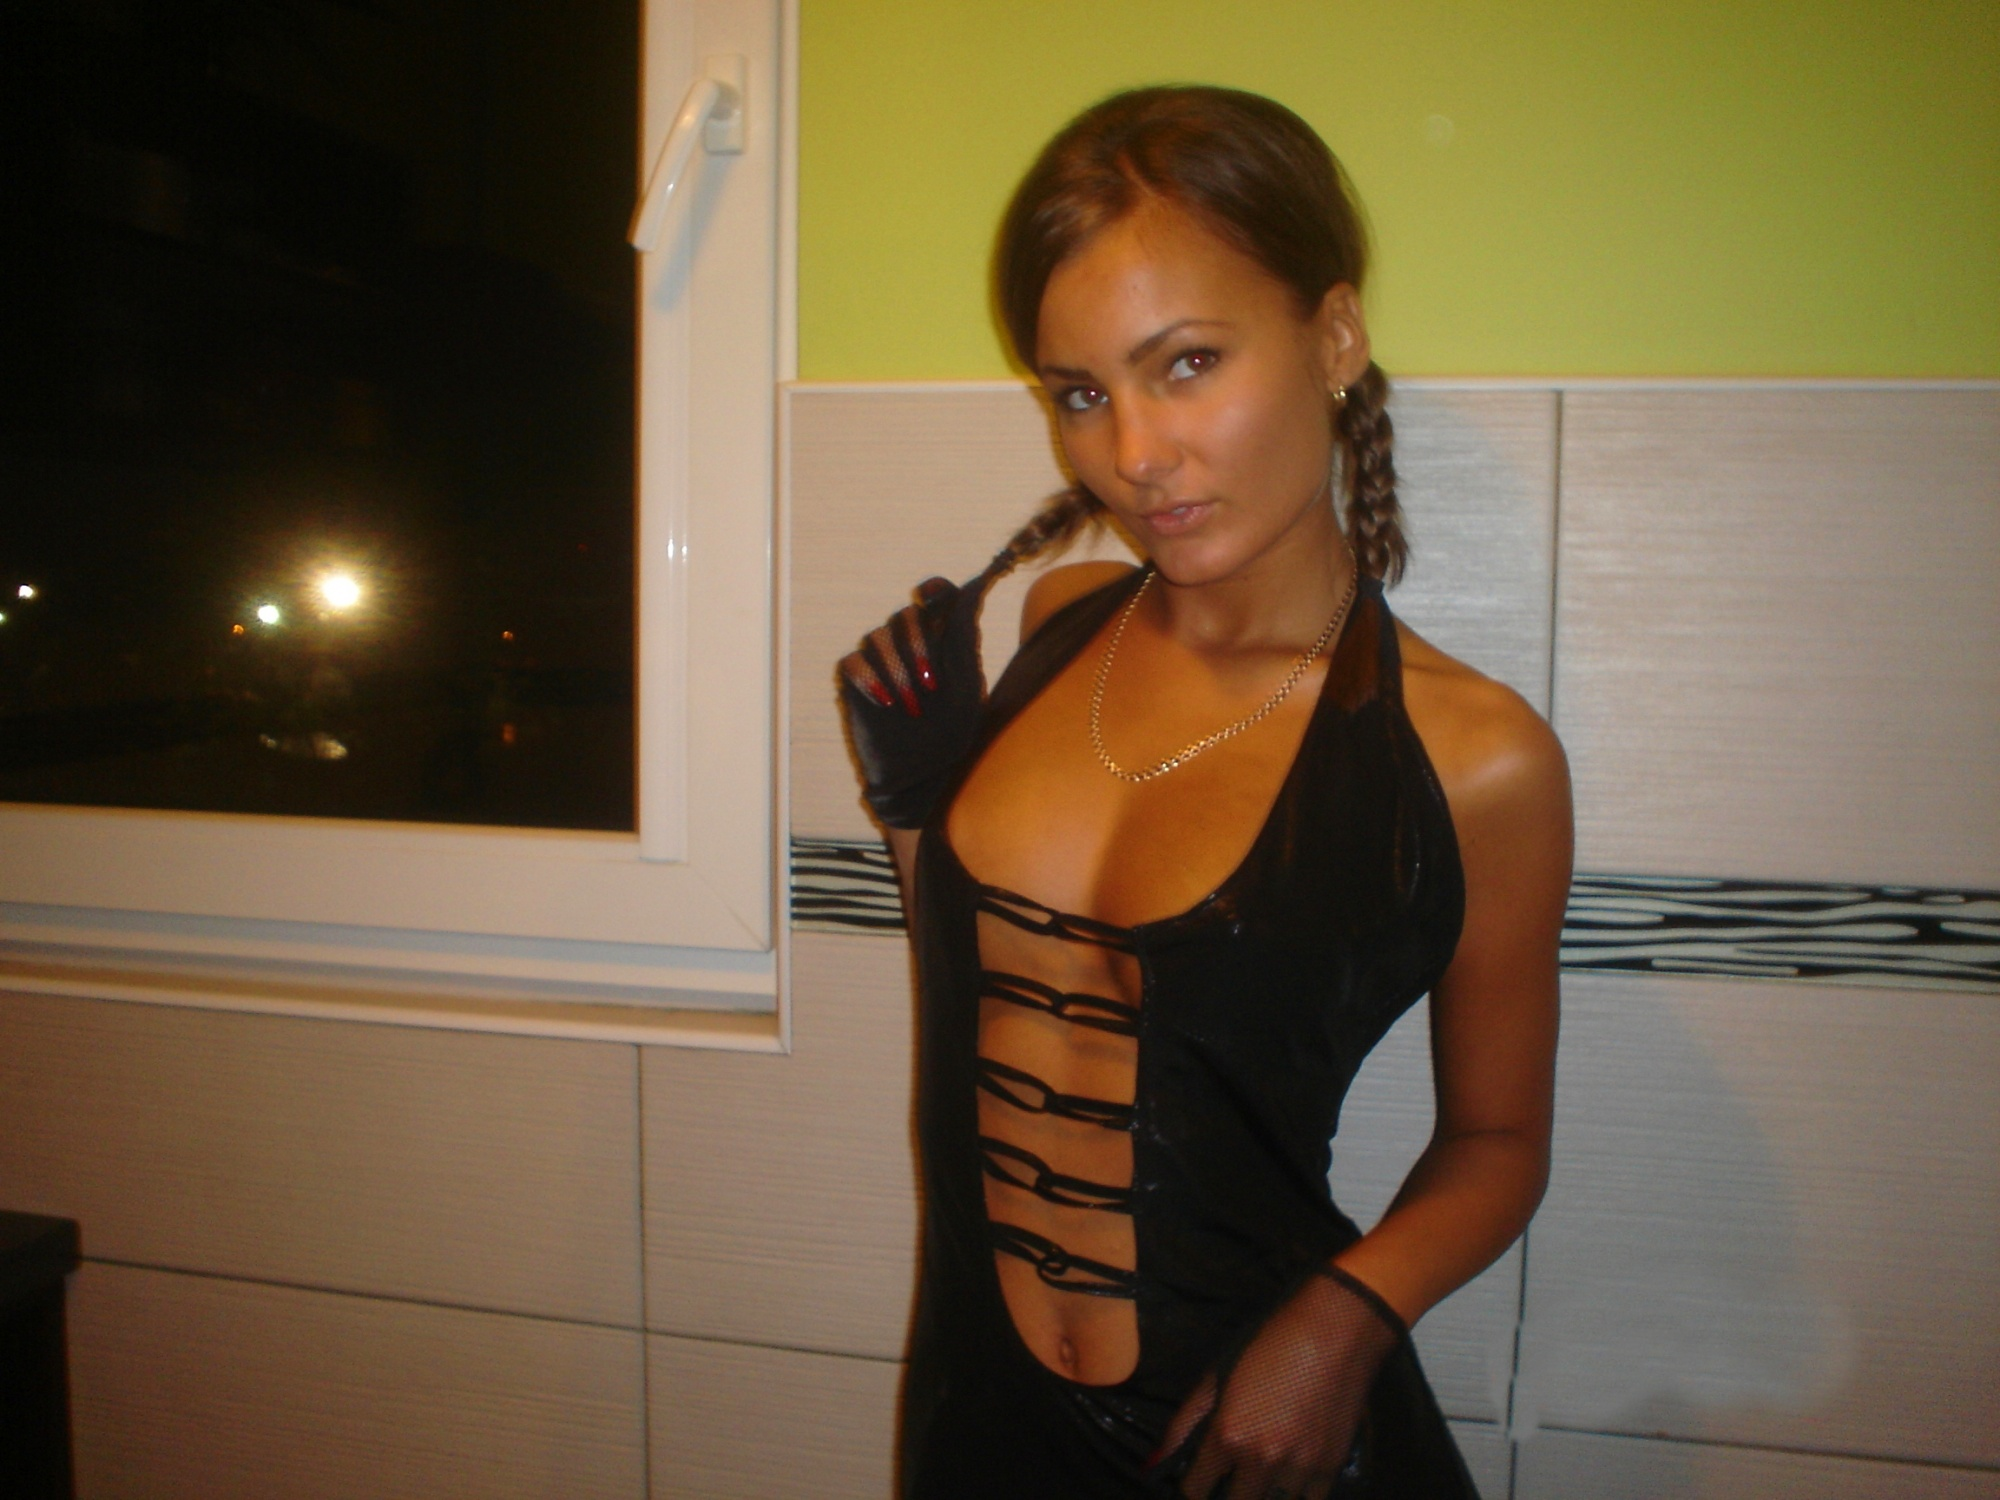 poland independent escorts mature ladies escorts